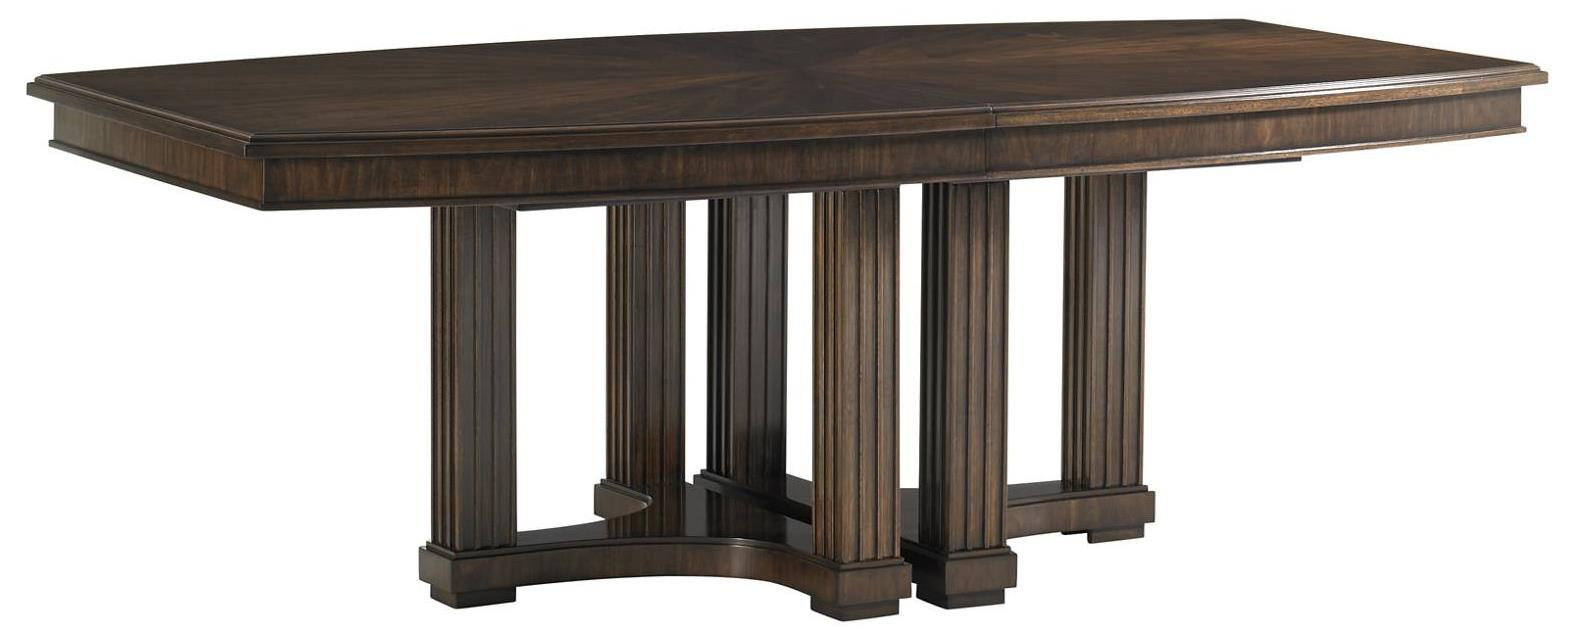 Stanley Furniture Crestaire Lola Double Pedestal Table - Item Number: 436-11-36